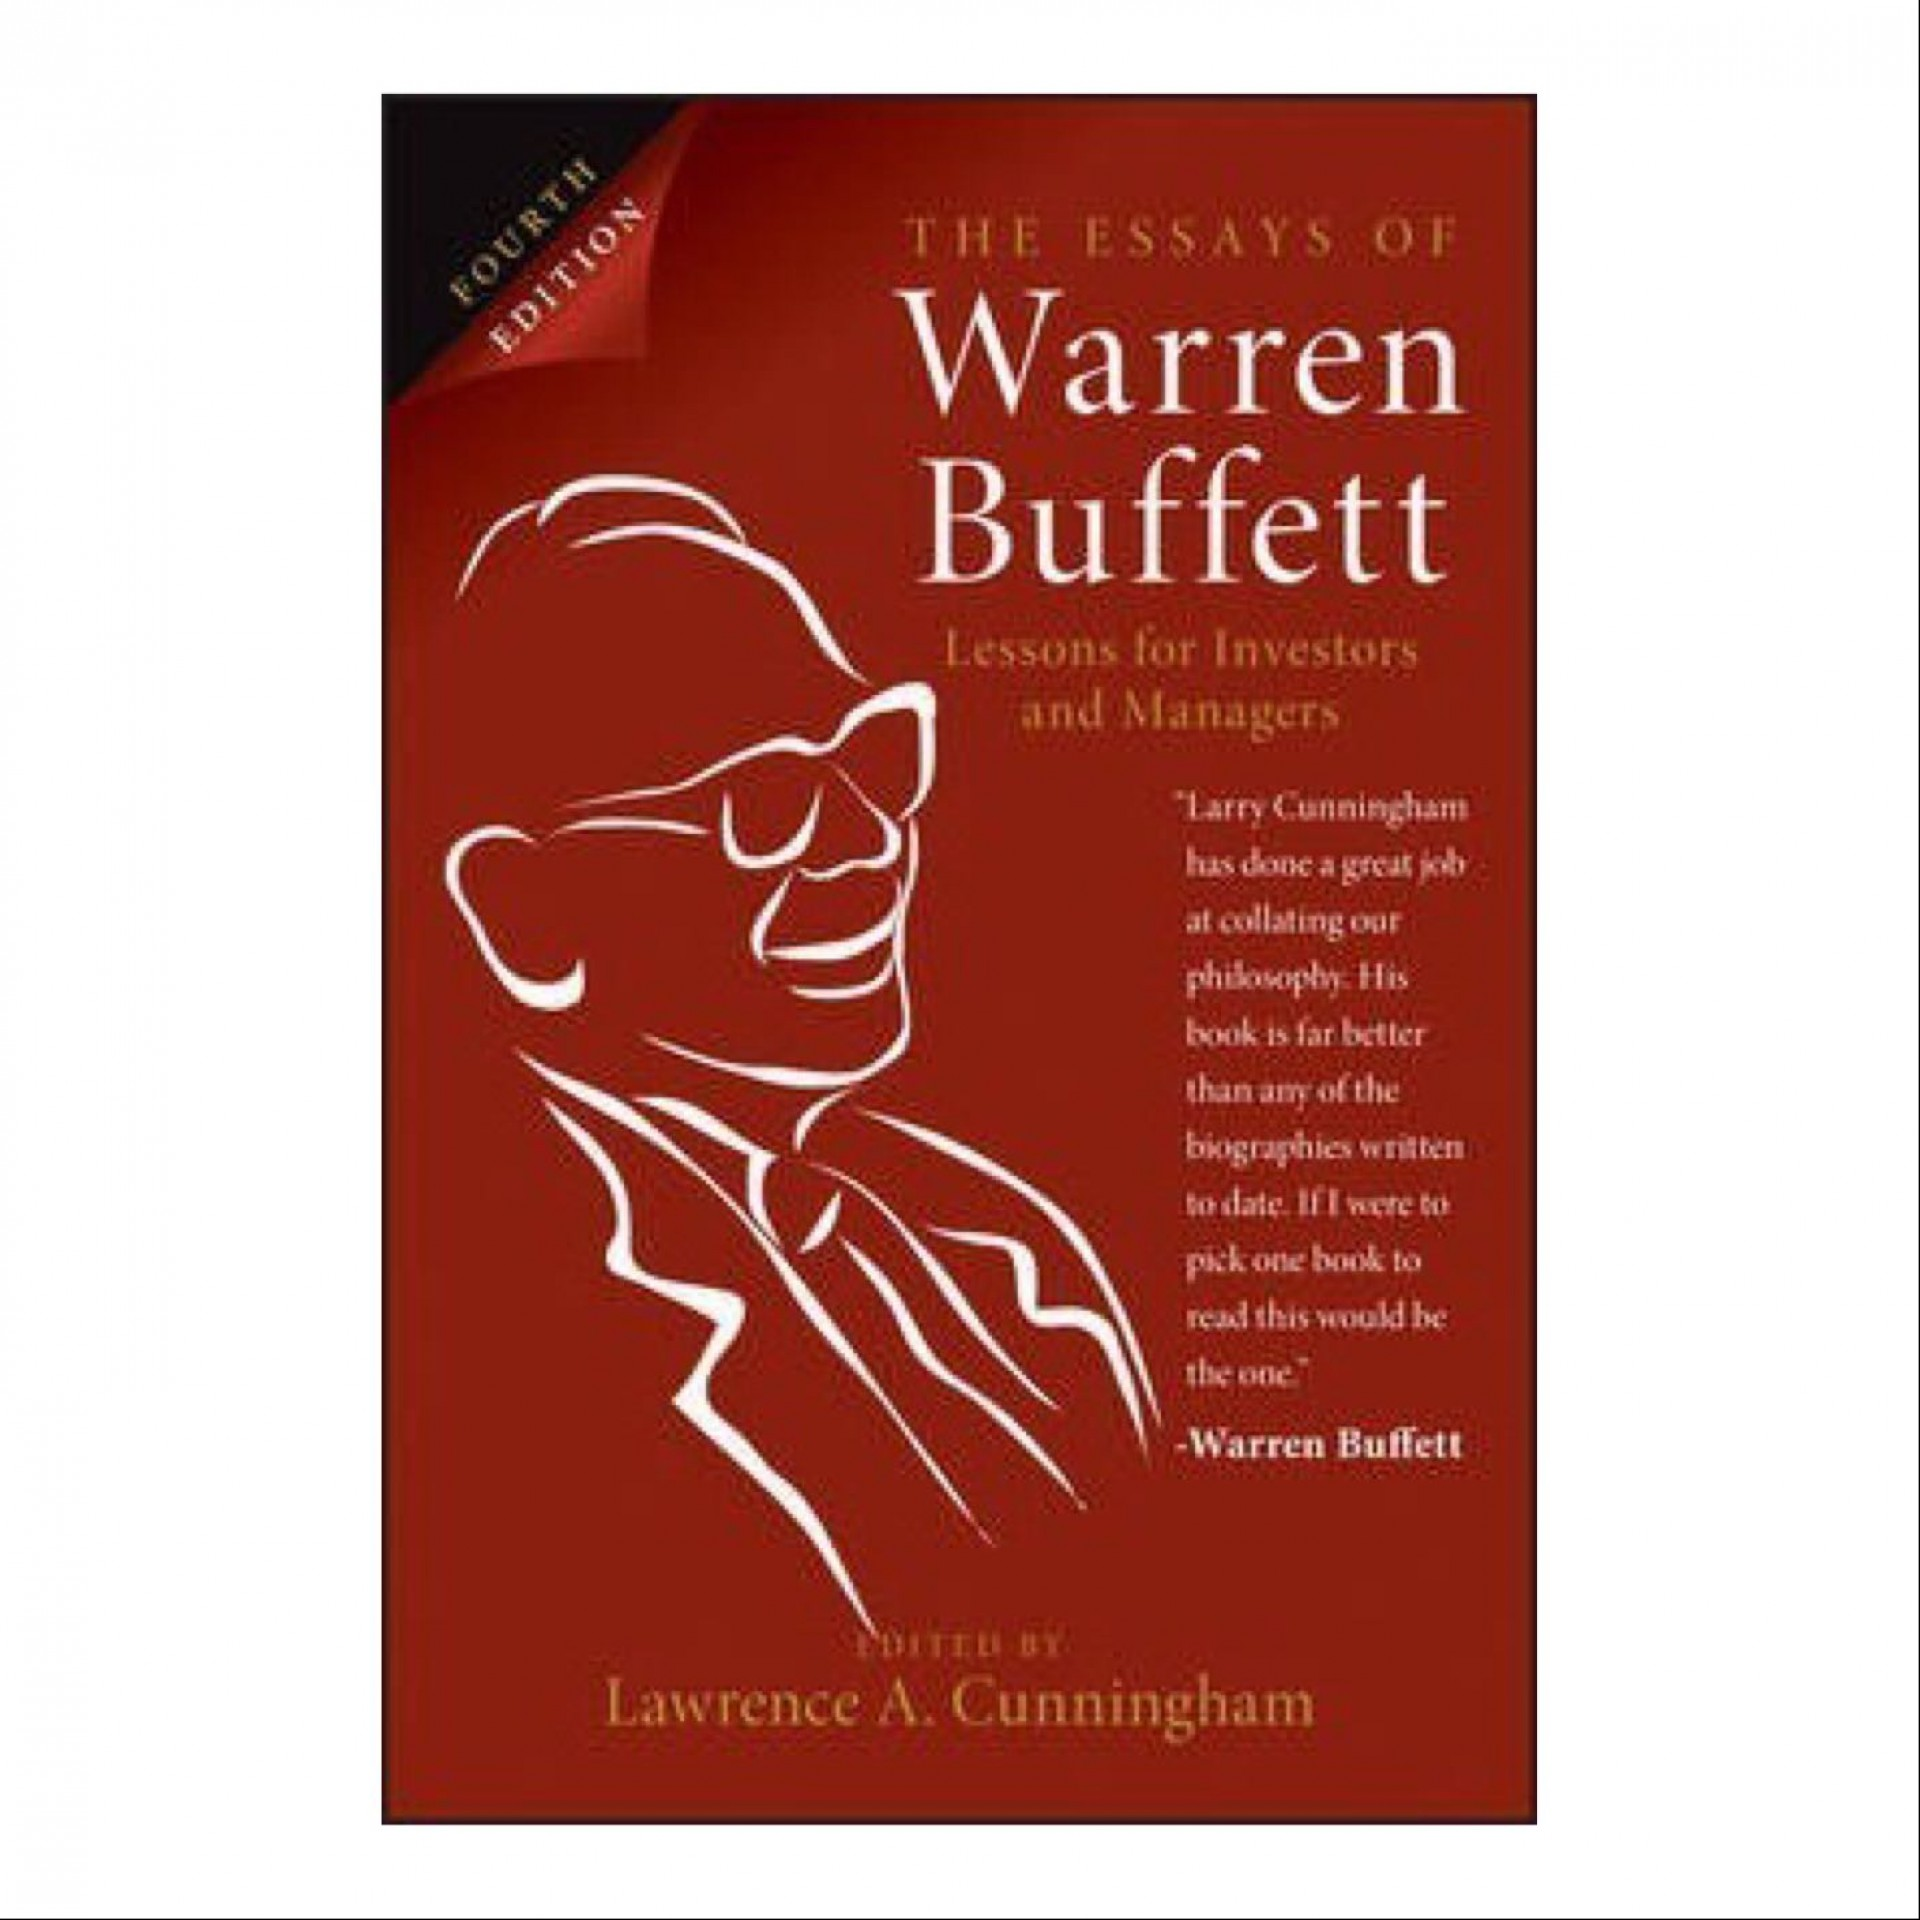 019 Essay Example The Essays Of Warren Lessons For Investors And Managers 1524100501 7d4f23ba Stirring Buffett Pages Audiobook Download Summary 1920